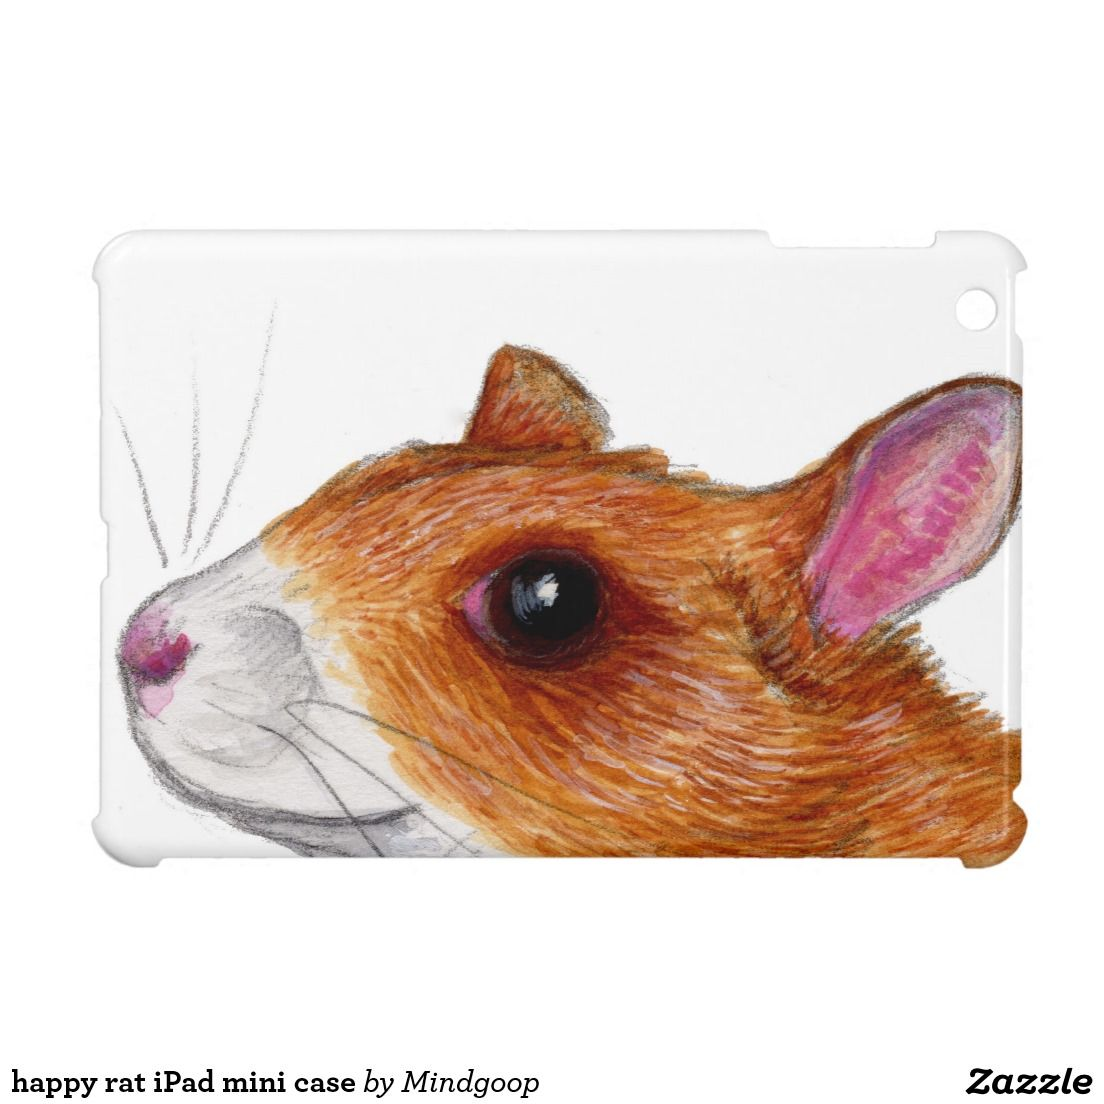 happy rat iPad mini case | iPads | Pinterest | Ipad mini cases, iPad ...